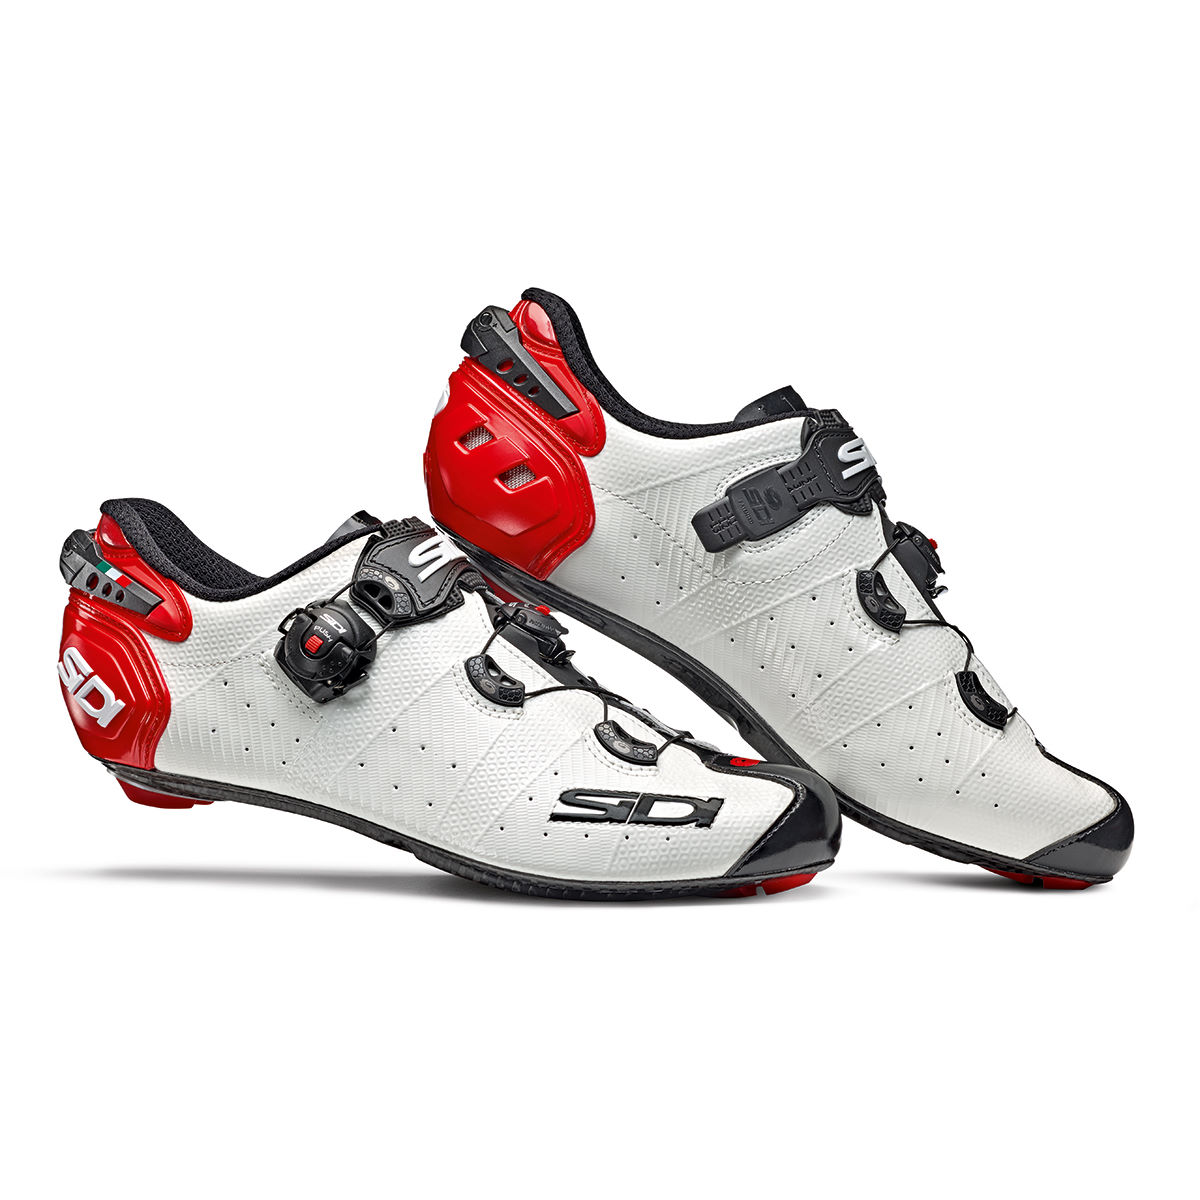 Sidi Wire 2 Carbon Road Shoes - Eu 41 White/black/red  Cycling Shoes